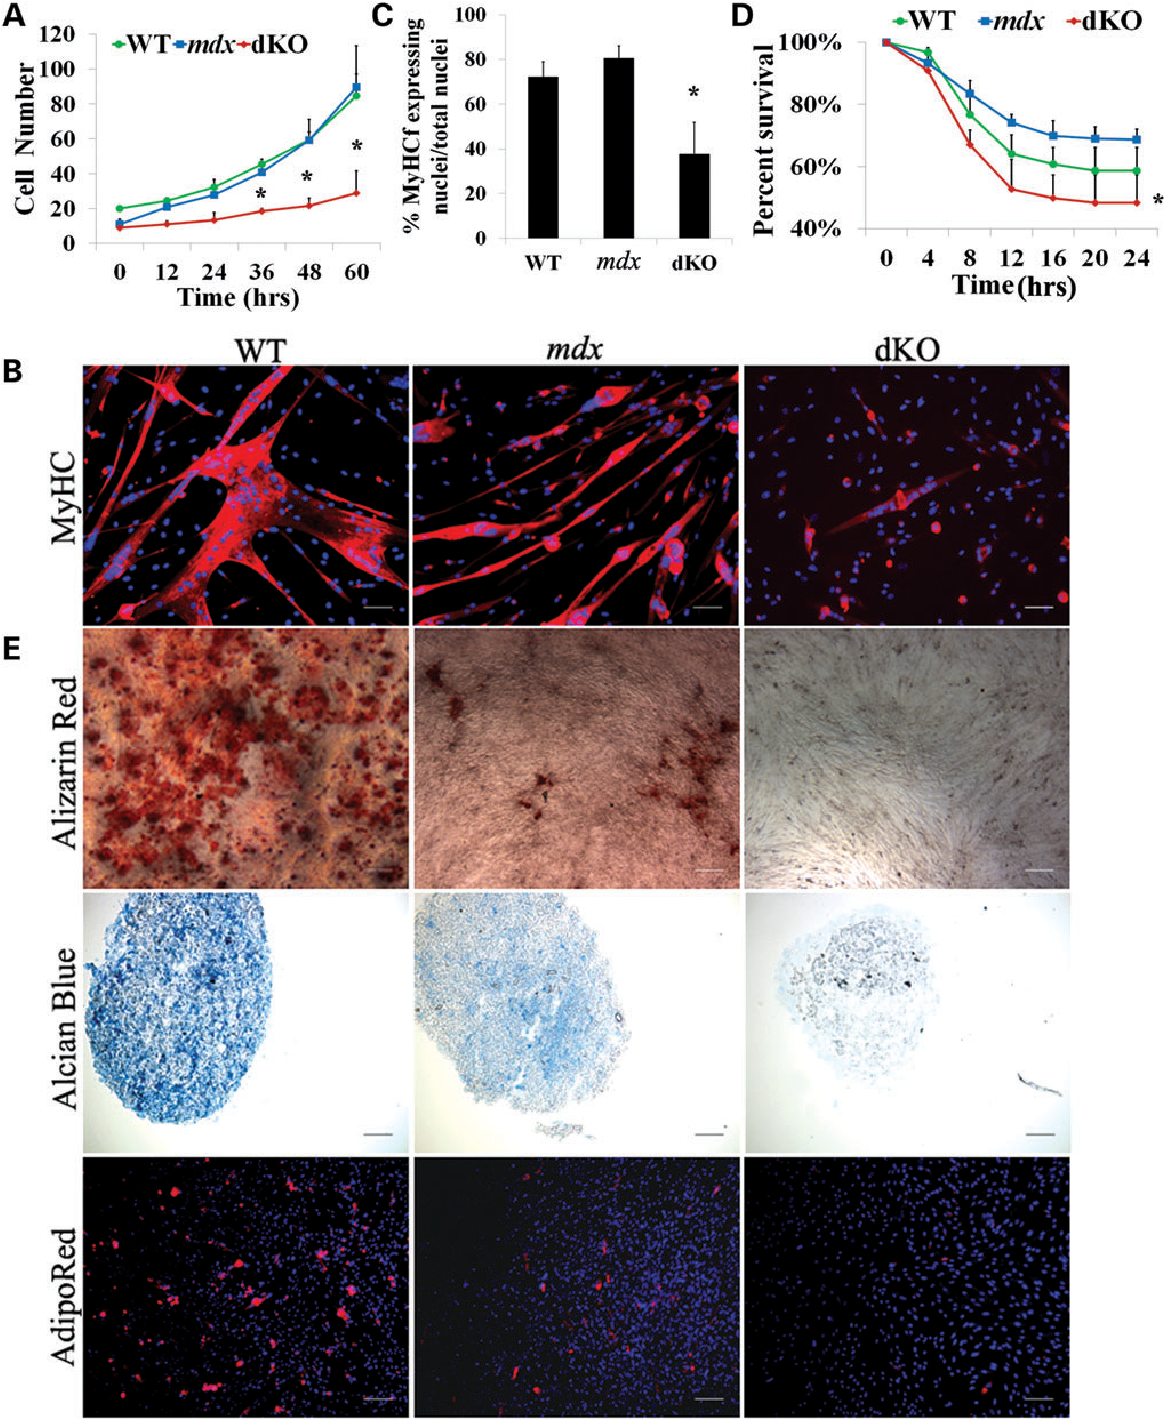 Figure 5. Muscle-derived stem cells (MDSCs) isolated from aged dKO muscle exhibit a reduction of their functionality. (A) Cell proliferation rate was measured using a Live Cell Imaging (LCI) system. The graph displays the average number of cells at each time point (calculated from 3–4 populations per genotype). Error bars indicate 'mean+SD'. ∗P , 0.01. (B) MDSCs were cultured in myogenic differentiation medium for 3 days. Cell fusion into multinucleated myotubes was determined by immunostaining for MyHCf, a terminal myogenic differentiation marker. (C) Myogenic differentiation was quantified by calculating the number of nuclei in MyHCf-positive myotubes relative to the total number of nuclei in the culture. A total of three populations of WT, mdx and dKO MDSCs were tested. Error bars indicate 'mean+SD'. ∗P , 0.01 (D) Each cell population (dKO,mdx and WT) was exposed to 400 mM hydrogenperoxide in proliferationmedium containing PI. Using the LCI system, 100× bright field and fluorescence images were taken at 10 min intervals over 24 h. Identifying the number of PI+ cells per field of view out of the total cell number determined the percentage of cell death over time. Error bars indicate 'mean+SD', n ¼ 3,∗P , 0.01. (E) Multilineage differentiation of MDSCs. The three populations of cells were cultured in insulin mediated adipogenic differentiation medium, BMP2 supplemented osteogenic medium and chondrogenic induction media supplemented with BMP2 and TGFb3, respectively, and then alizarin red (top), alcian blue (middle) and AdipoRed (bottom) staining were performed. In (B), all scale bars ¼ 50 mm. In (E), scale bar ¼ 50 mm for alizarin red and alcian blue, scale bar ¼ 100 mm for AdipoRed.